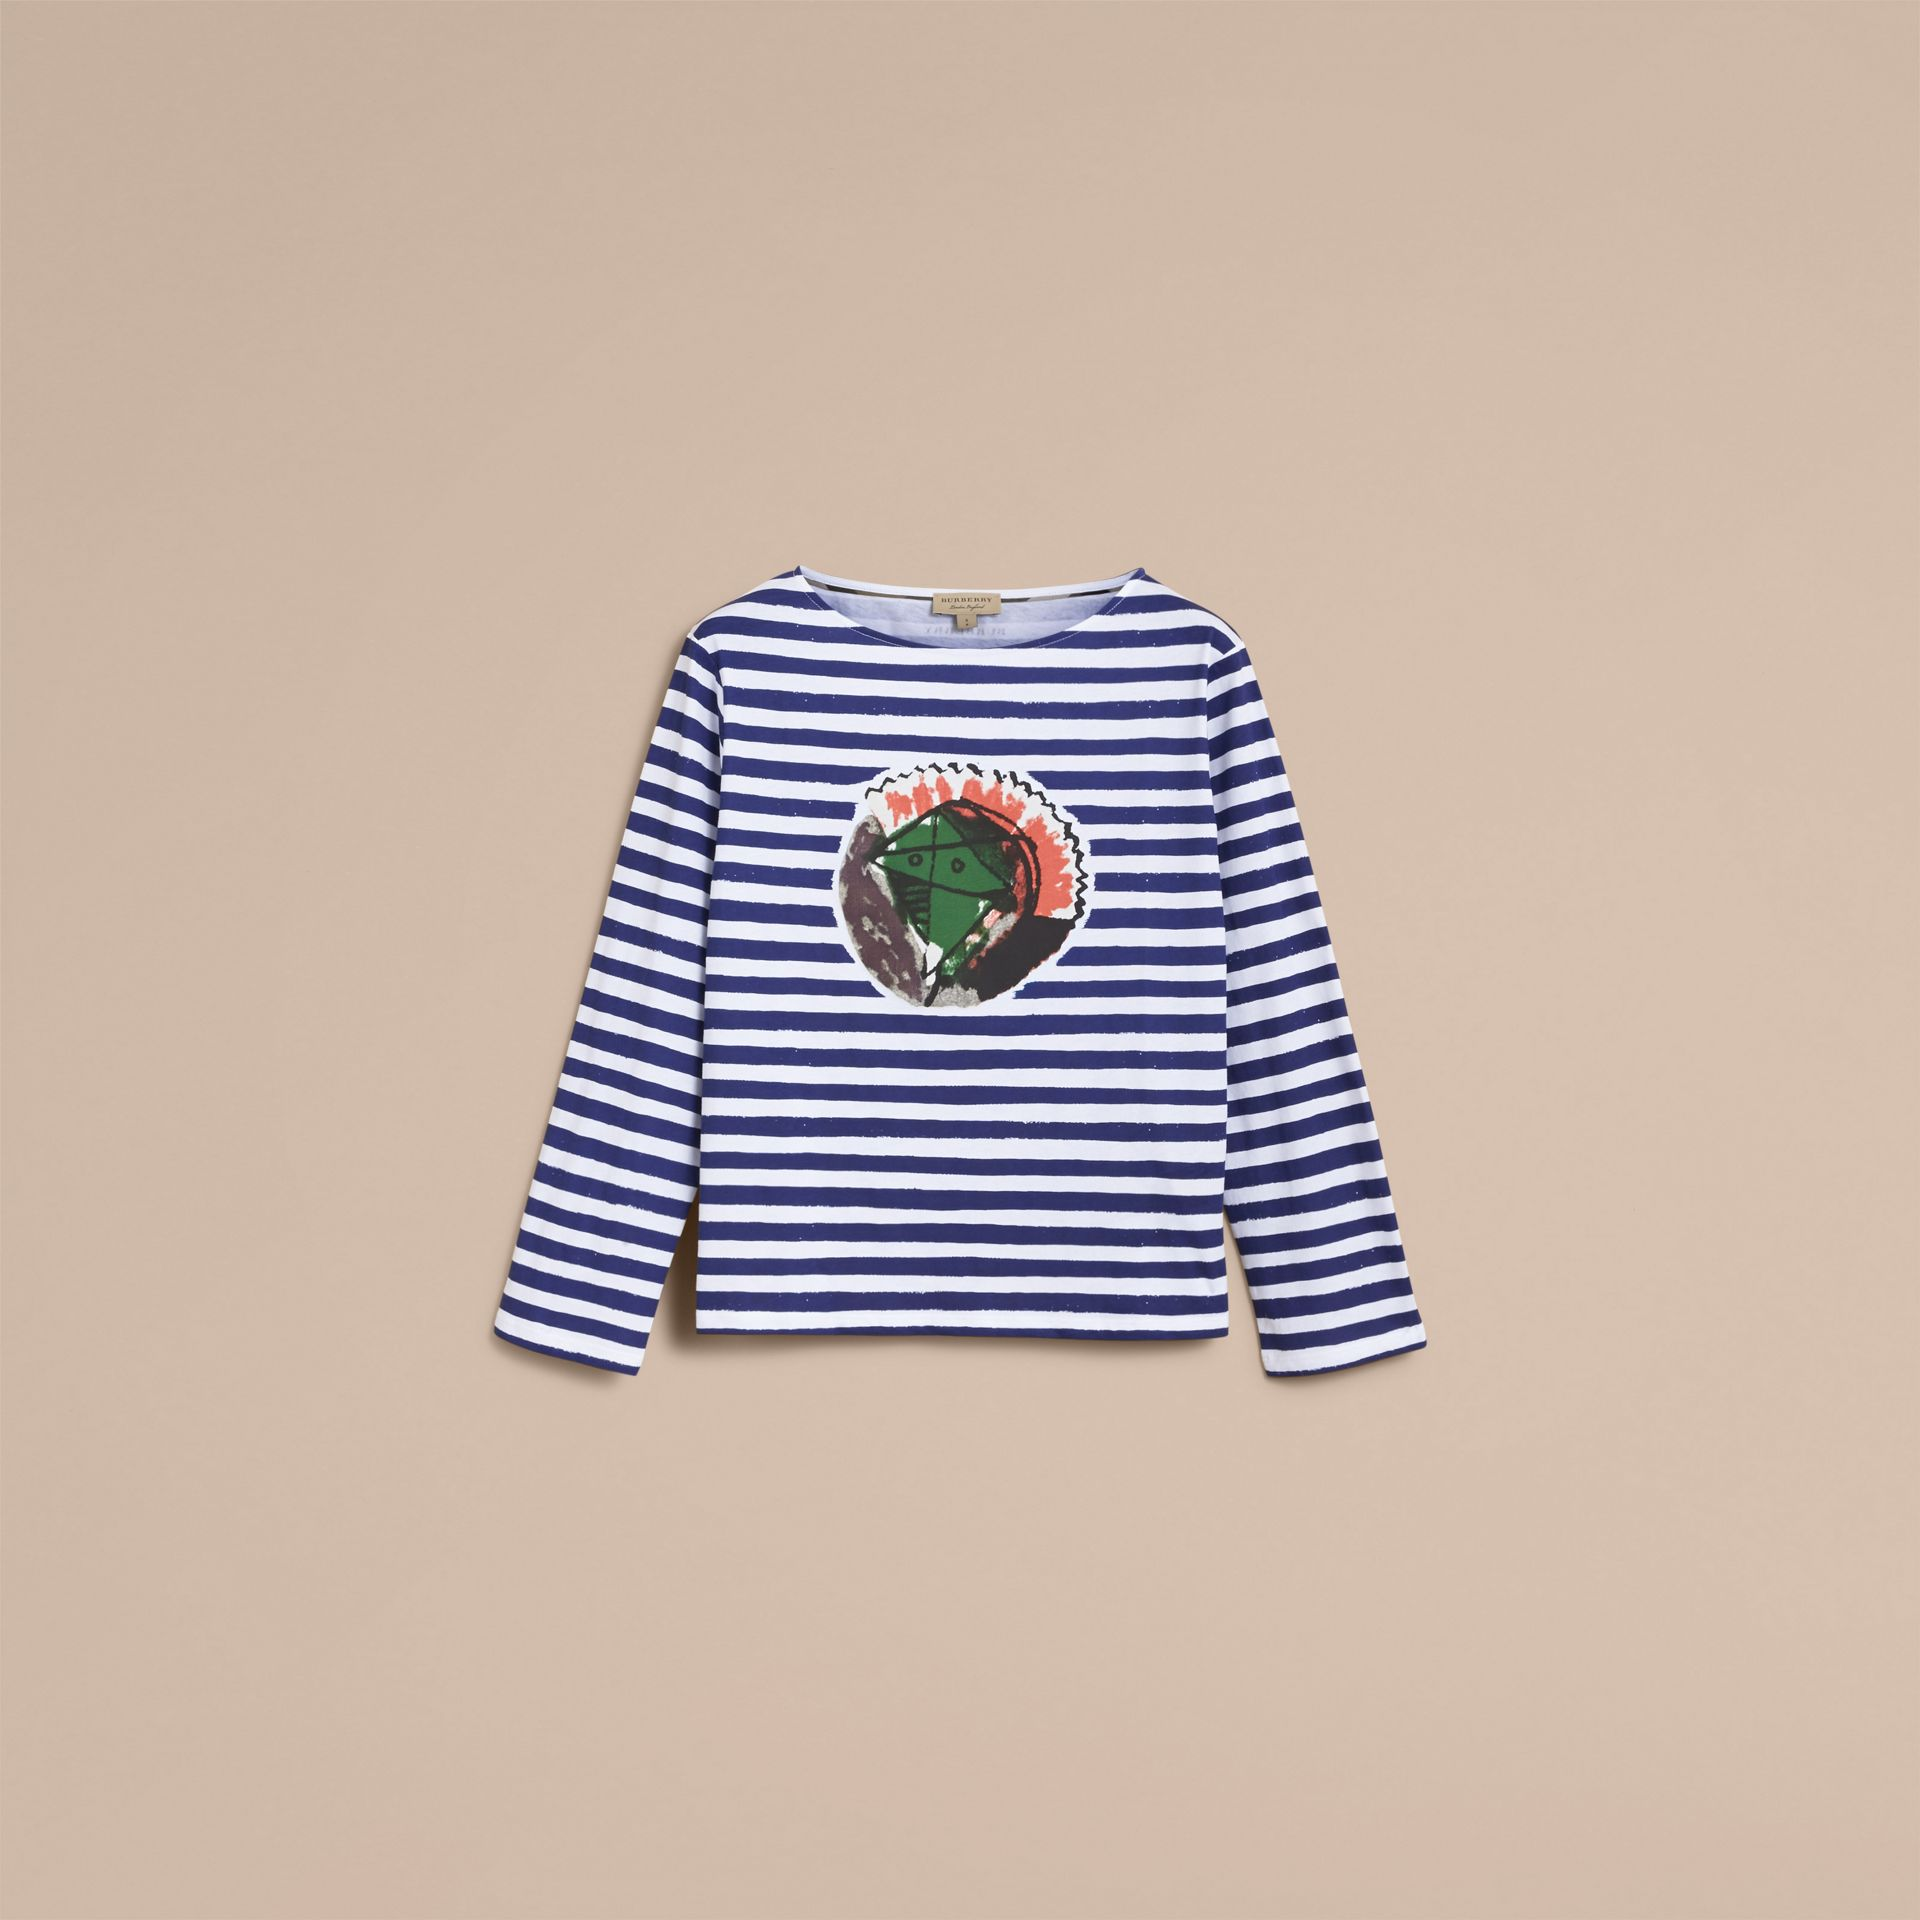 Pallas Heads Print Breton Stripe Jersey Top in Ink Blue/white - Women | Burberry United Kingdom - gallery image 3